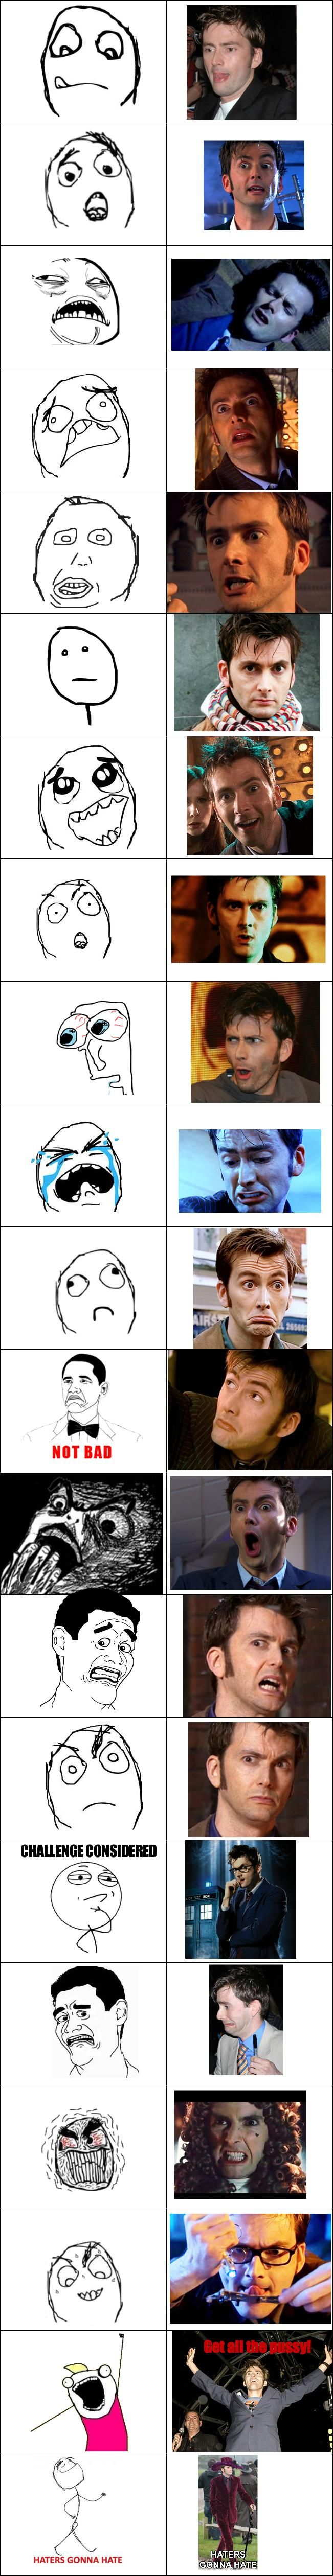 lol All those memes should be replaced with David Tennant faces from now on!